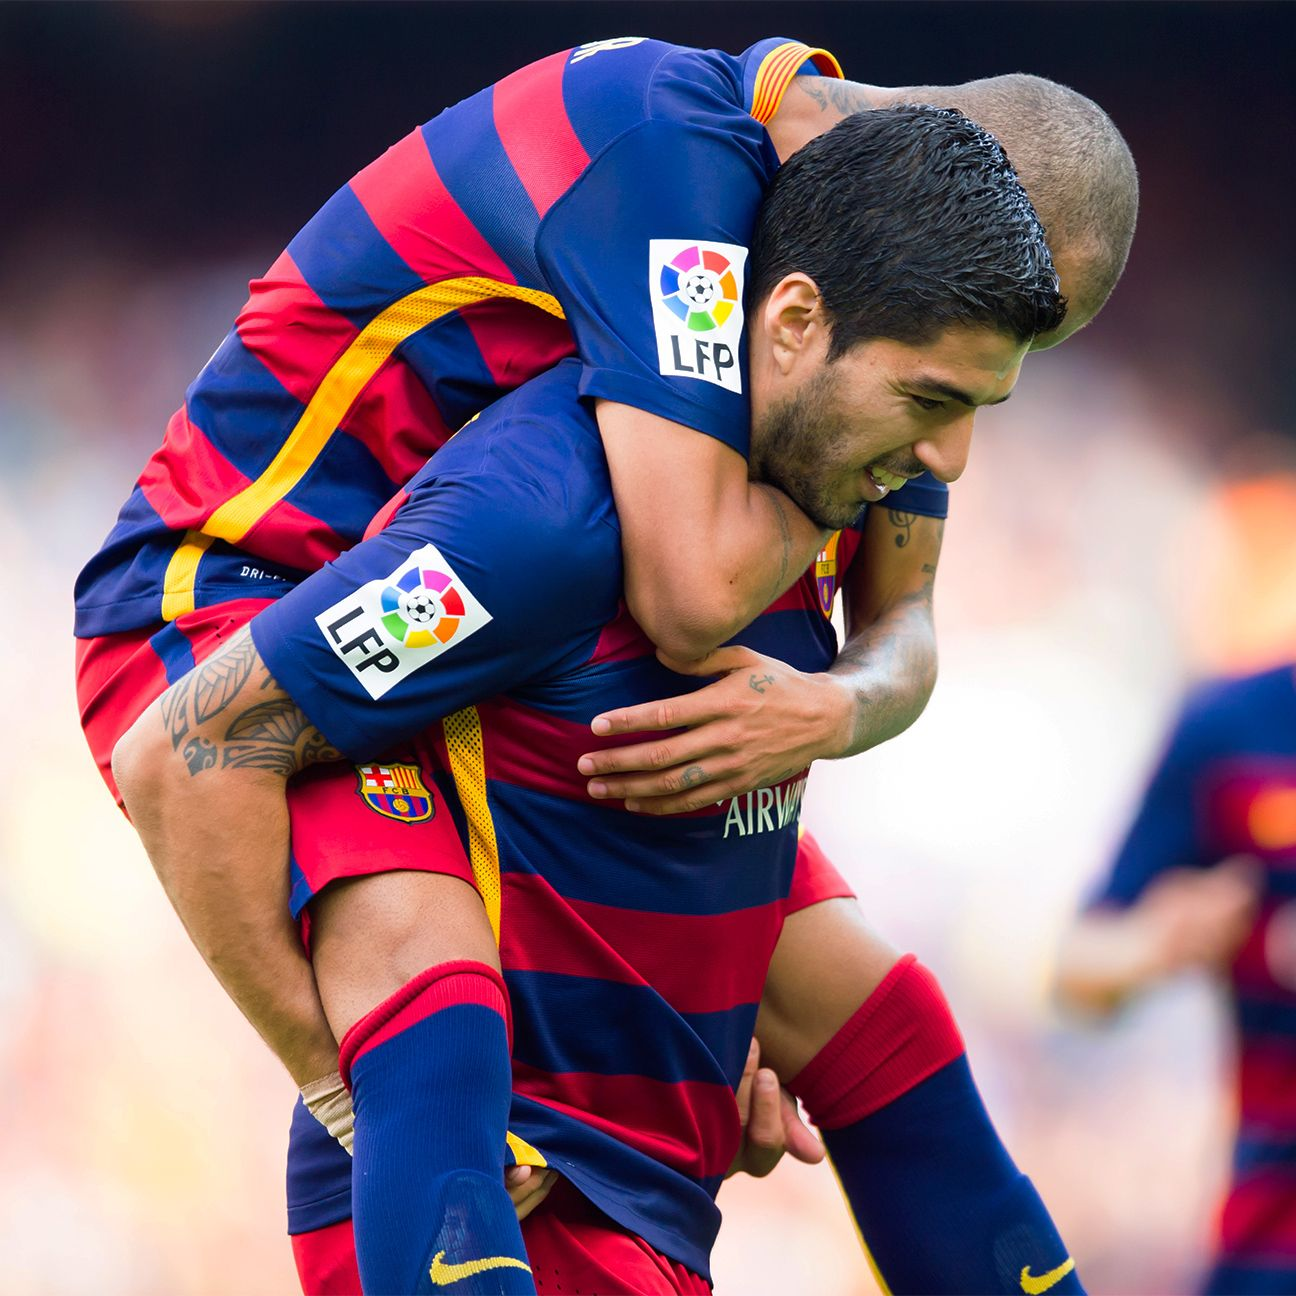 With Barcelona missing their superstar, Suarez stepped up to carry the load.